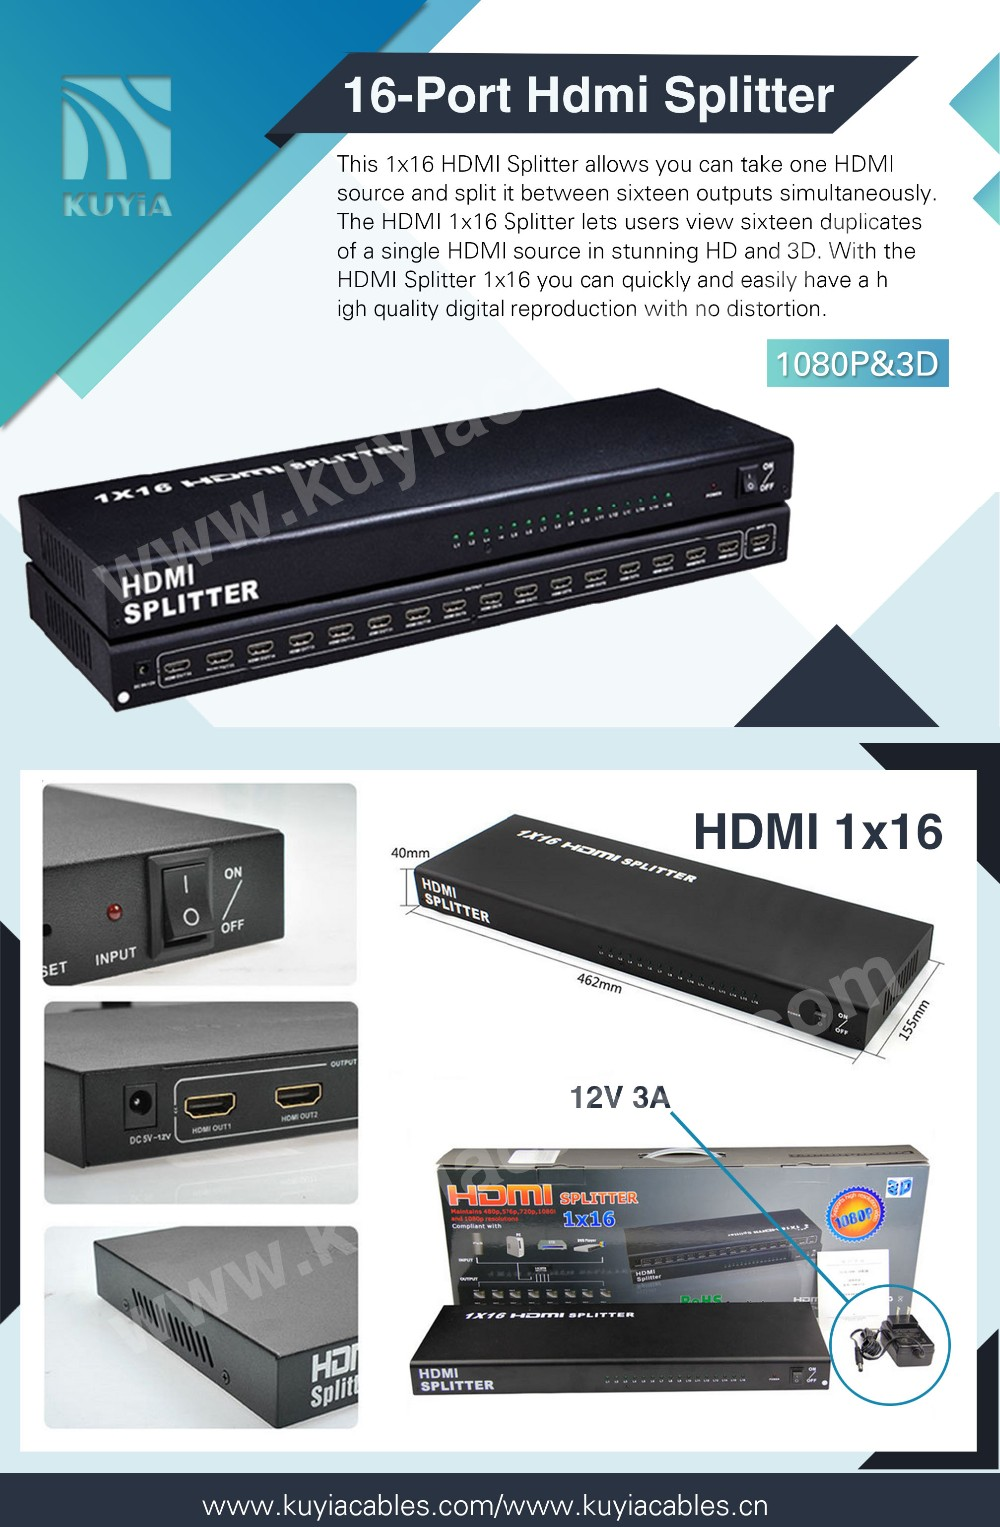 KuYia 1x16 HDMI Splitter 1X16 HDMI splitter 1in 16 out 16 port video converter connector adapter support 3D 1080p